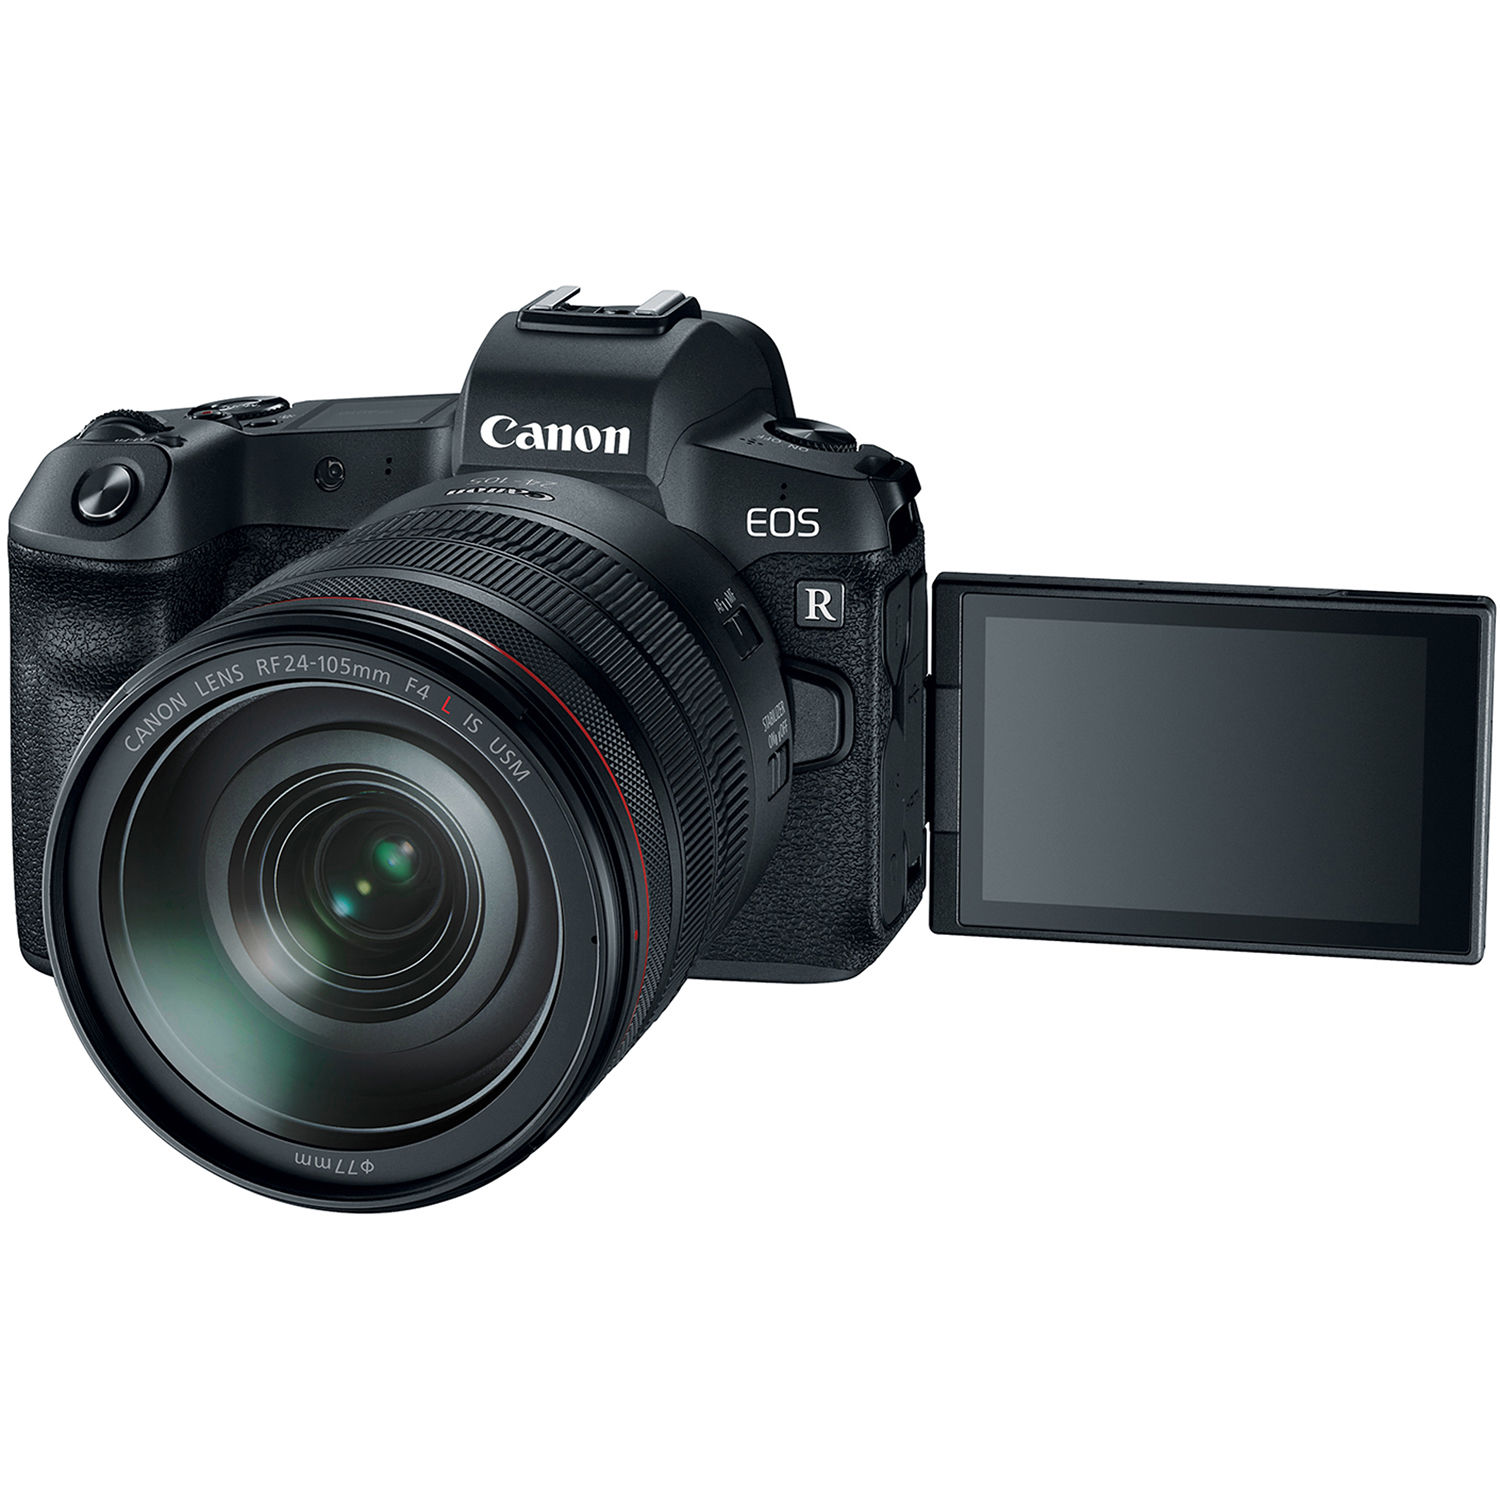 دوربین کانن  Canon EOS R Mirrorless Digital Camera with 24-105mm Lens